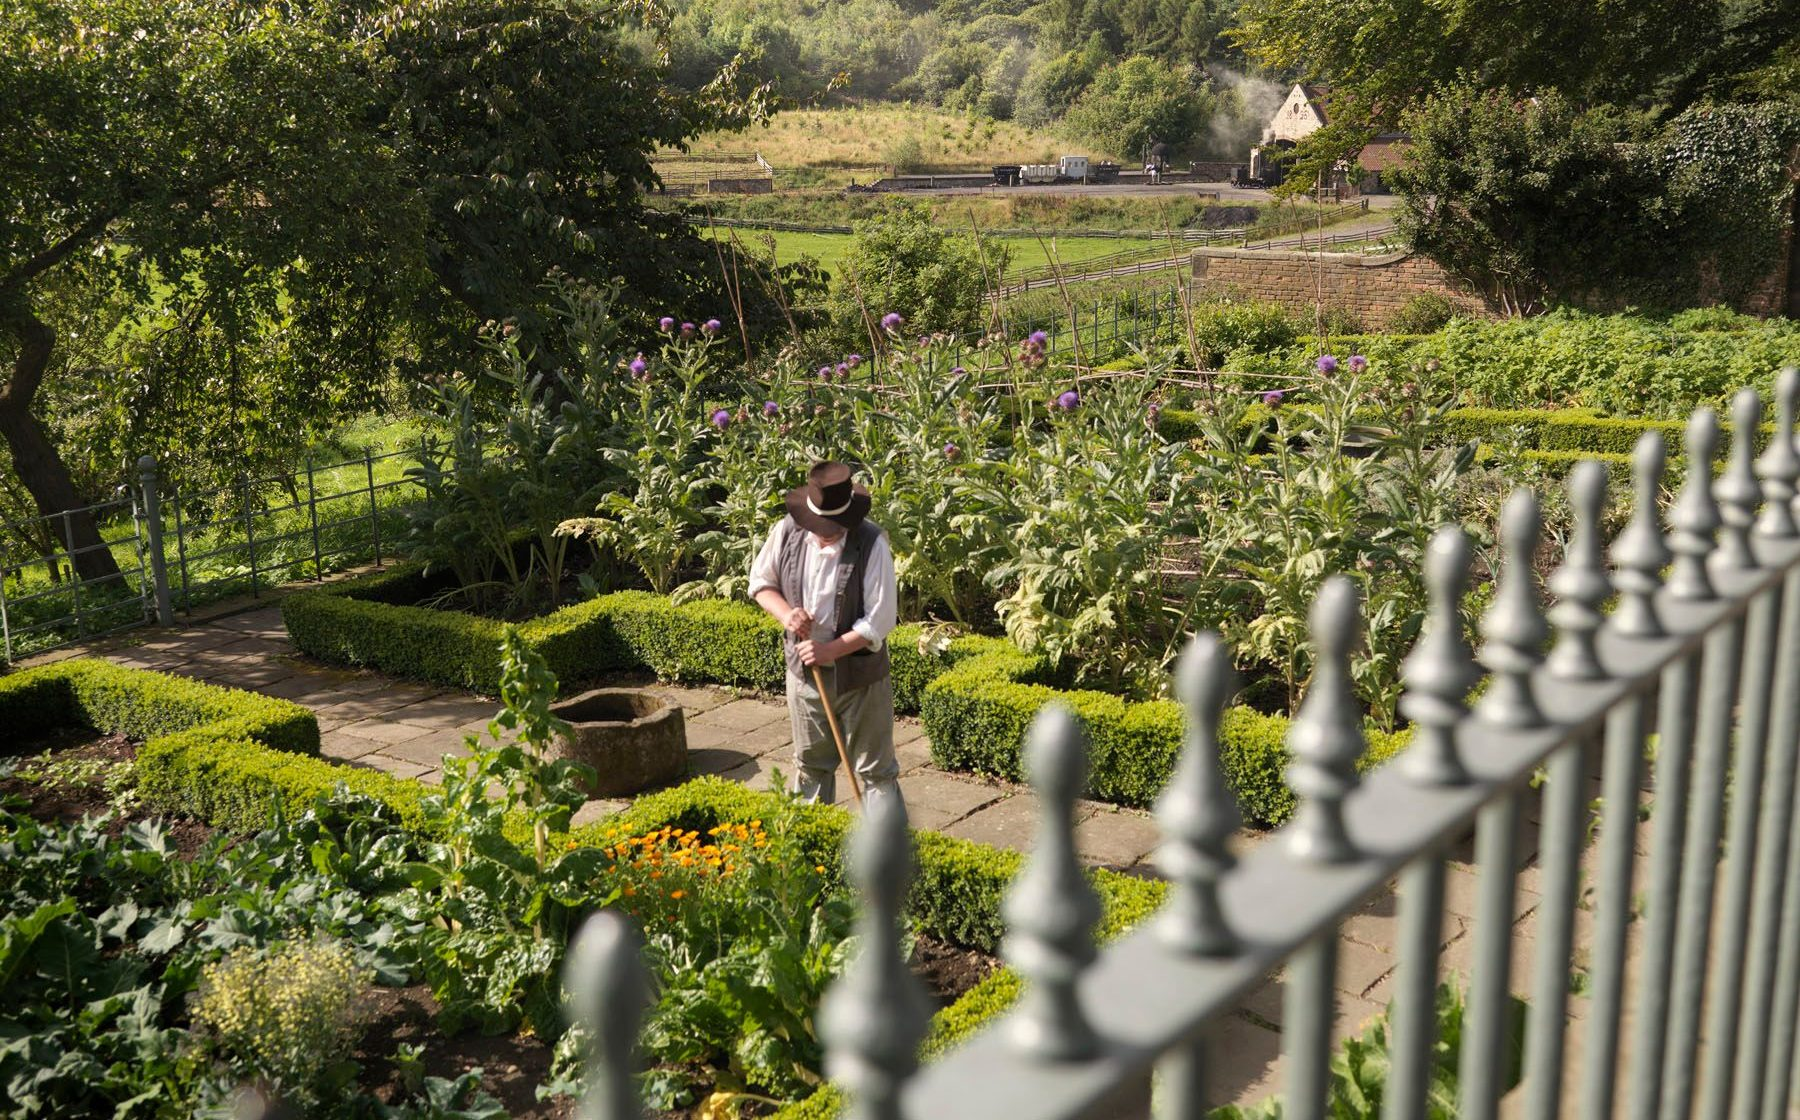 A gardener working at Pockerley Old Hall, part of Beamish: The Living Museum of the North